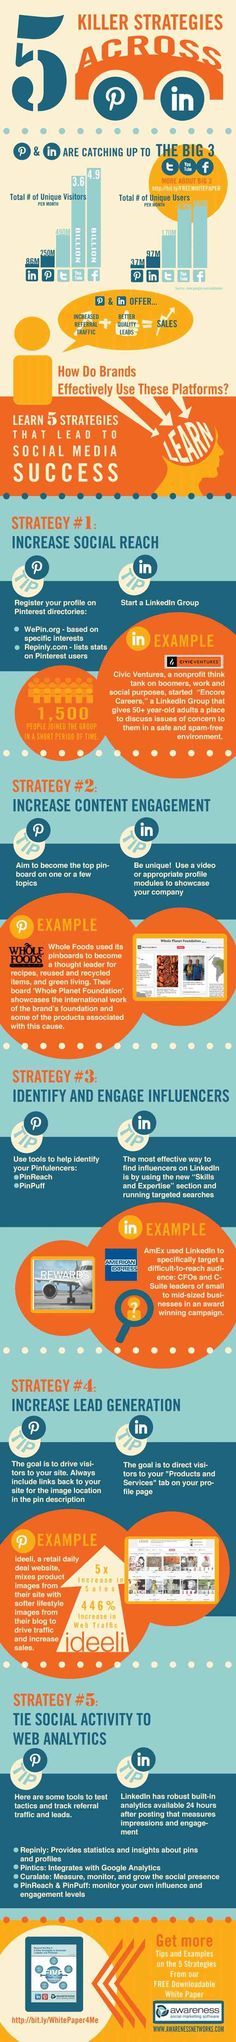 Beyond the Big 3: Strategies for Brands to Dominate Pinterest and LinkedIn (Infographic) | Business 2 Community